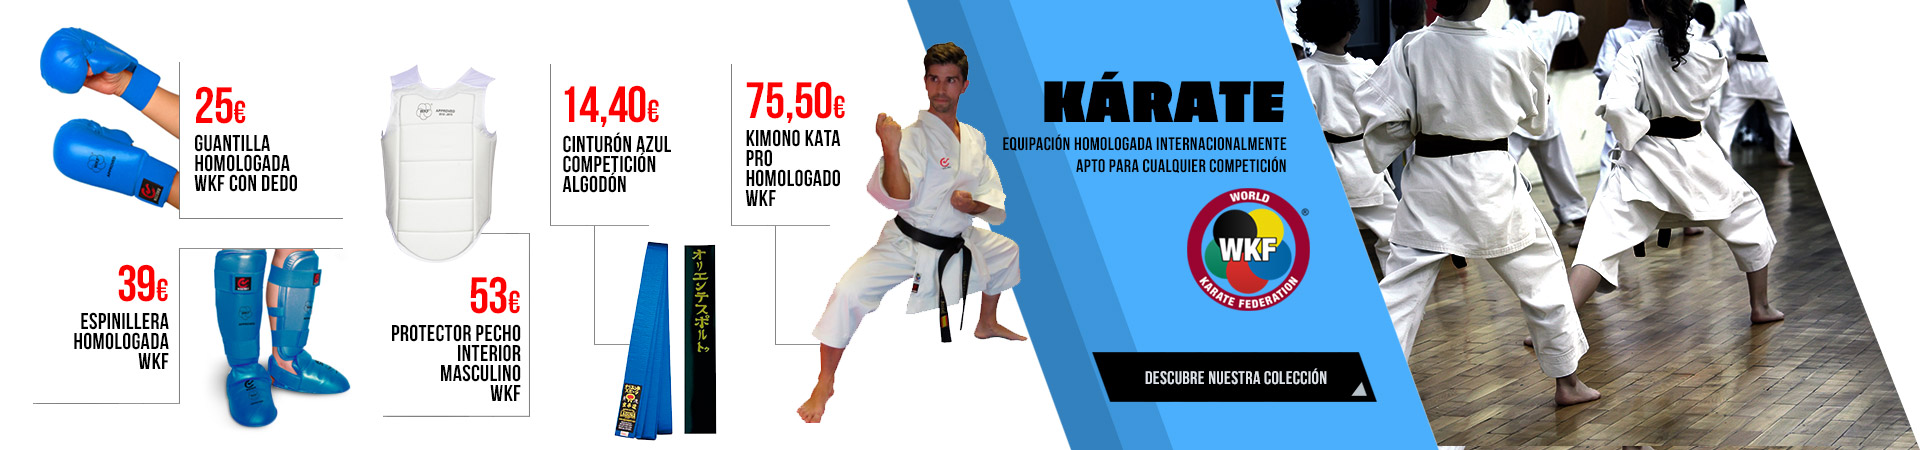 Slider-home-11-01-19--KARATE-2